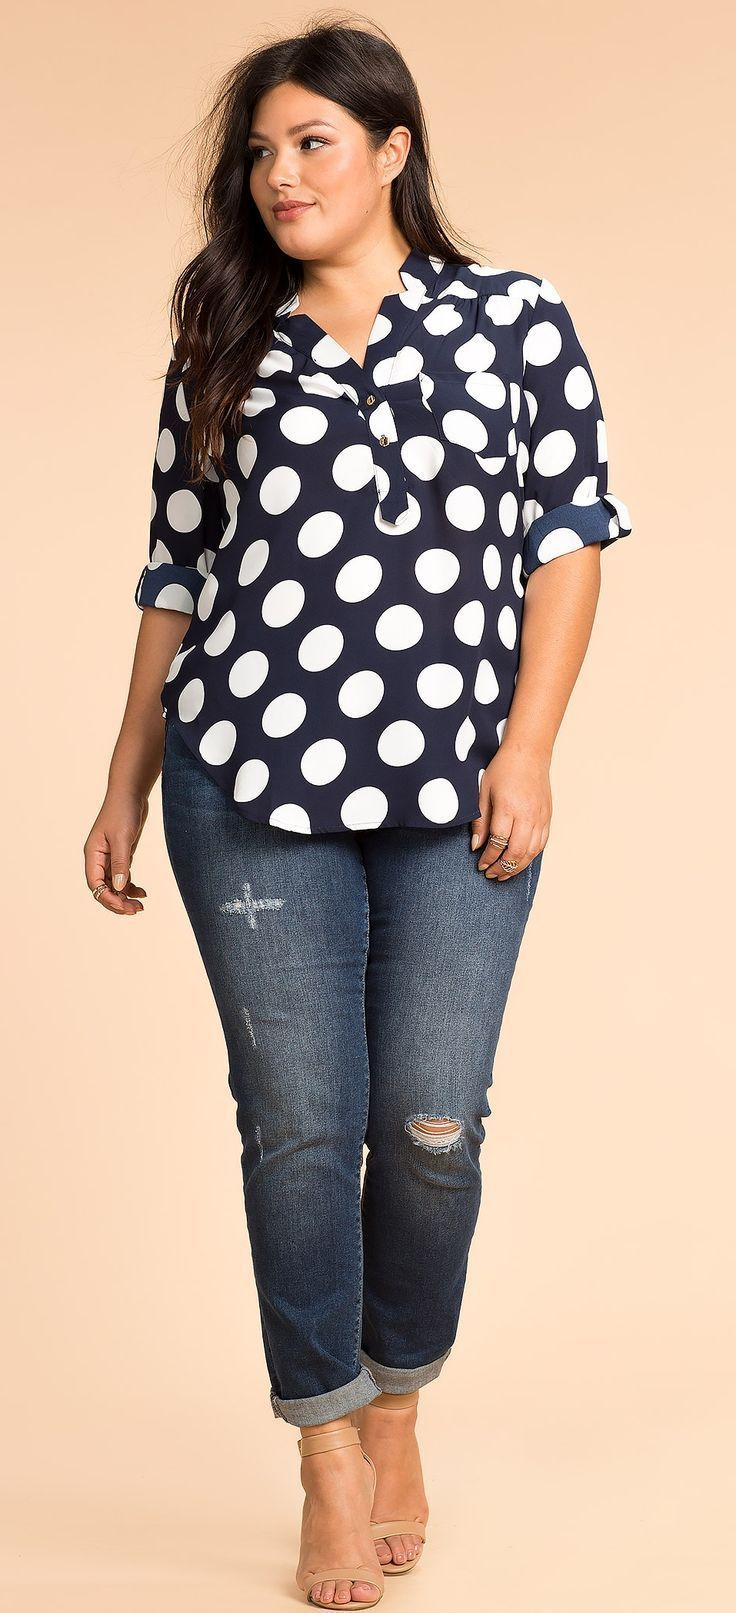 1000 ideas about Plus Size Casual on Pinterest  Plus Size Outfits Plus Sizes Fashion and Plus